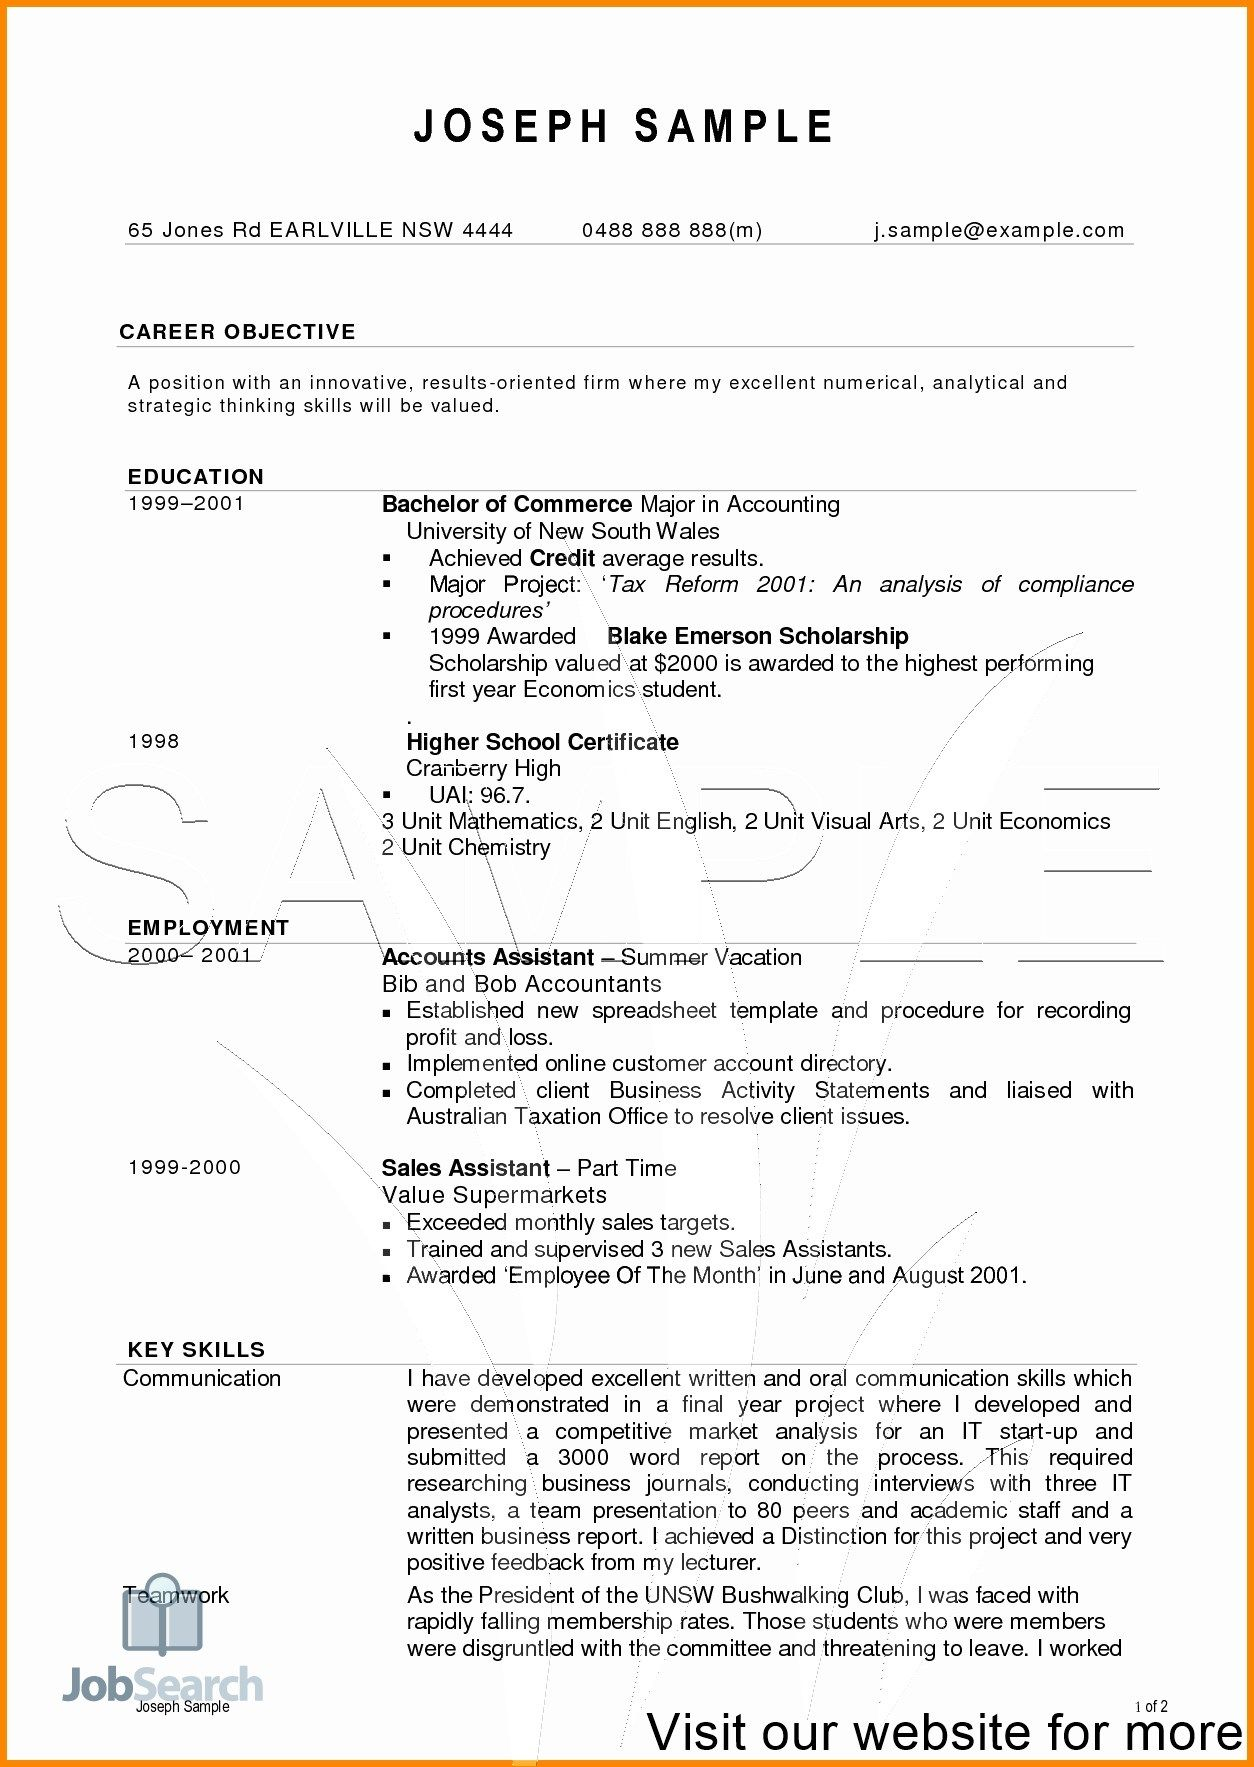 27 Cv Examples For Students Resume Format Free Download Resume Format For Freshers Resume Format